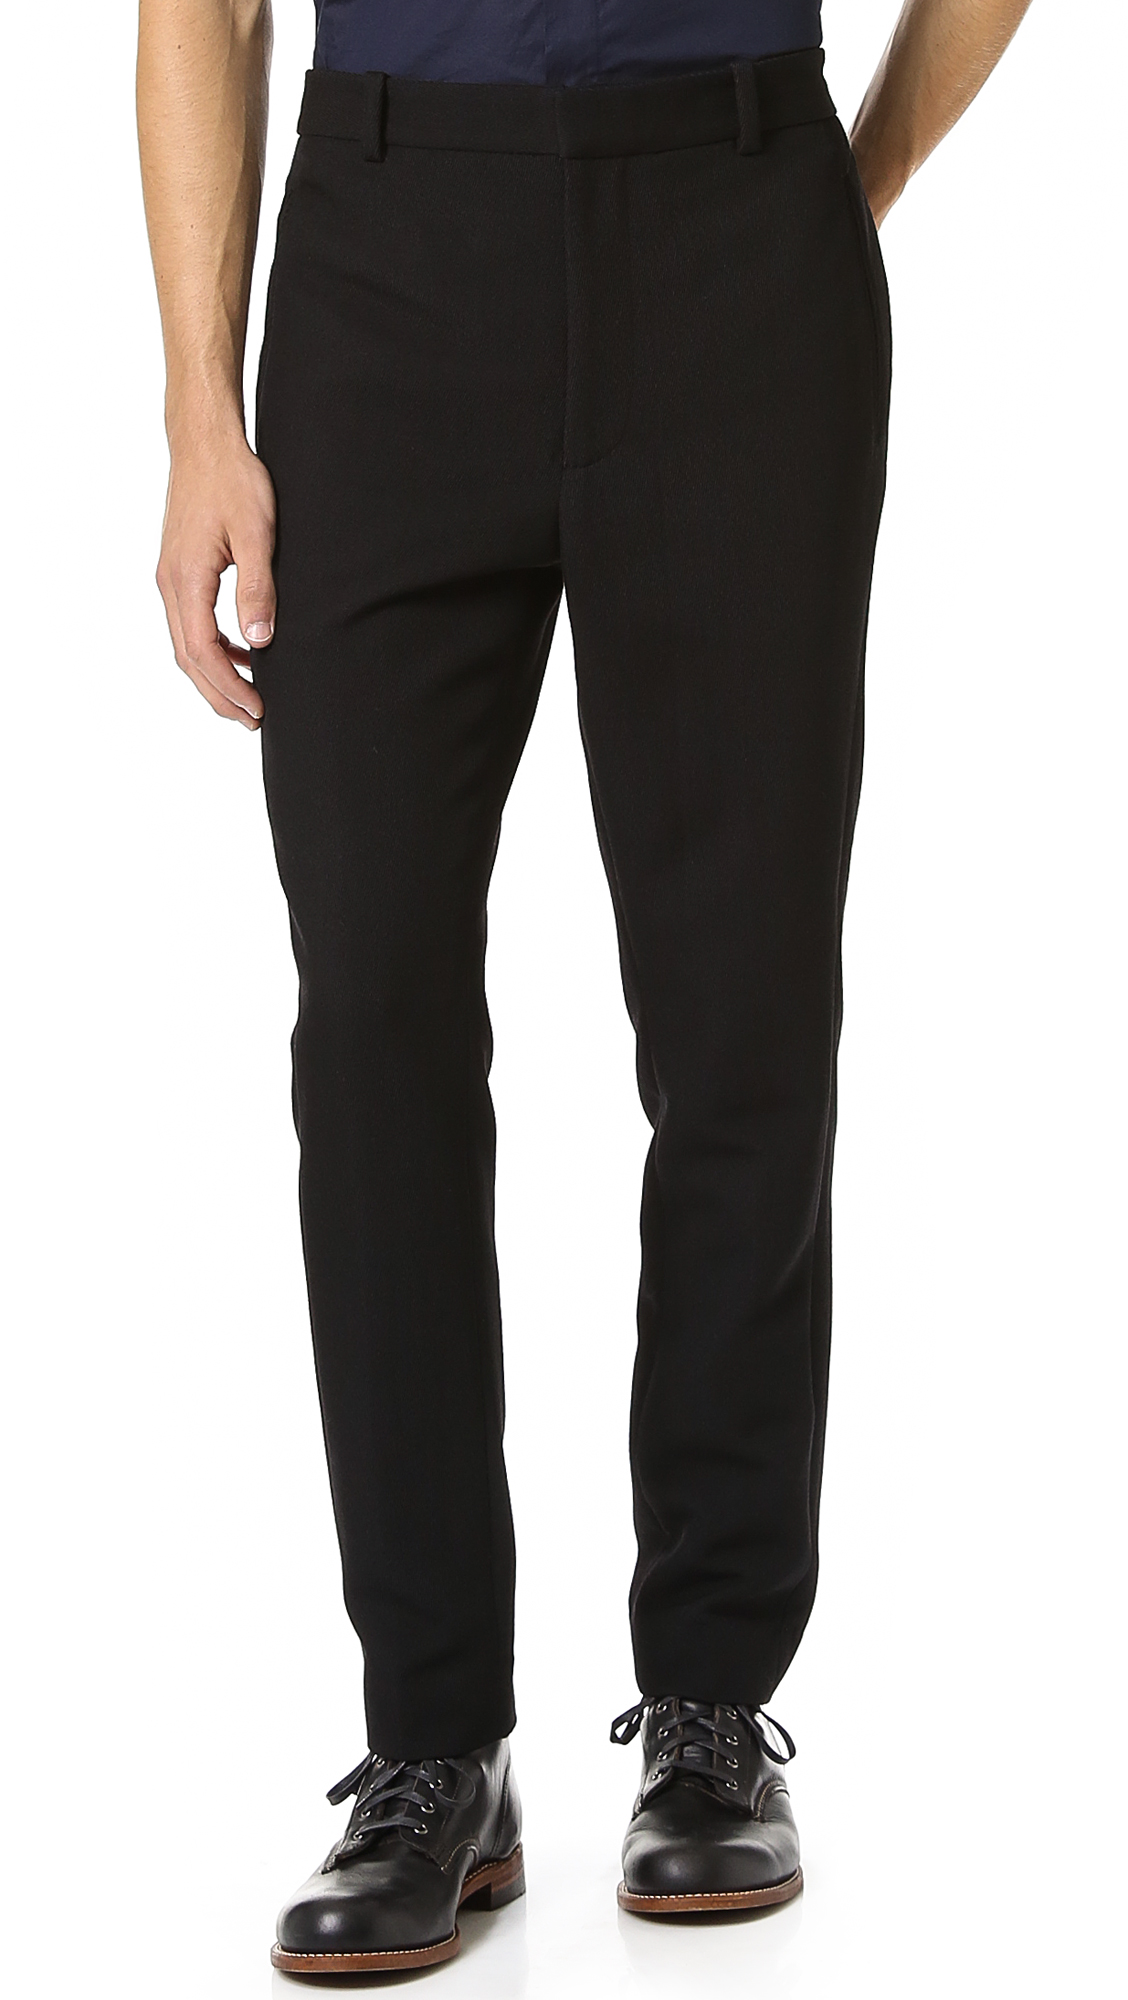 Haggar slim fit men's pants offer a slim, athletic fit for the discerning consumer who wants a well fitting pair of Haggar. Haggar Clothing Co.